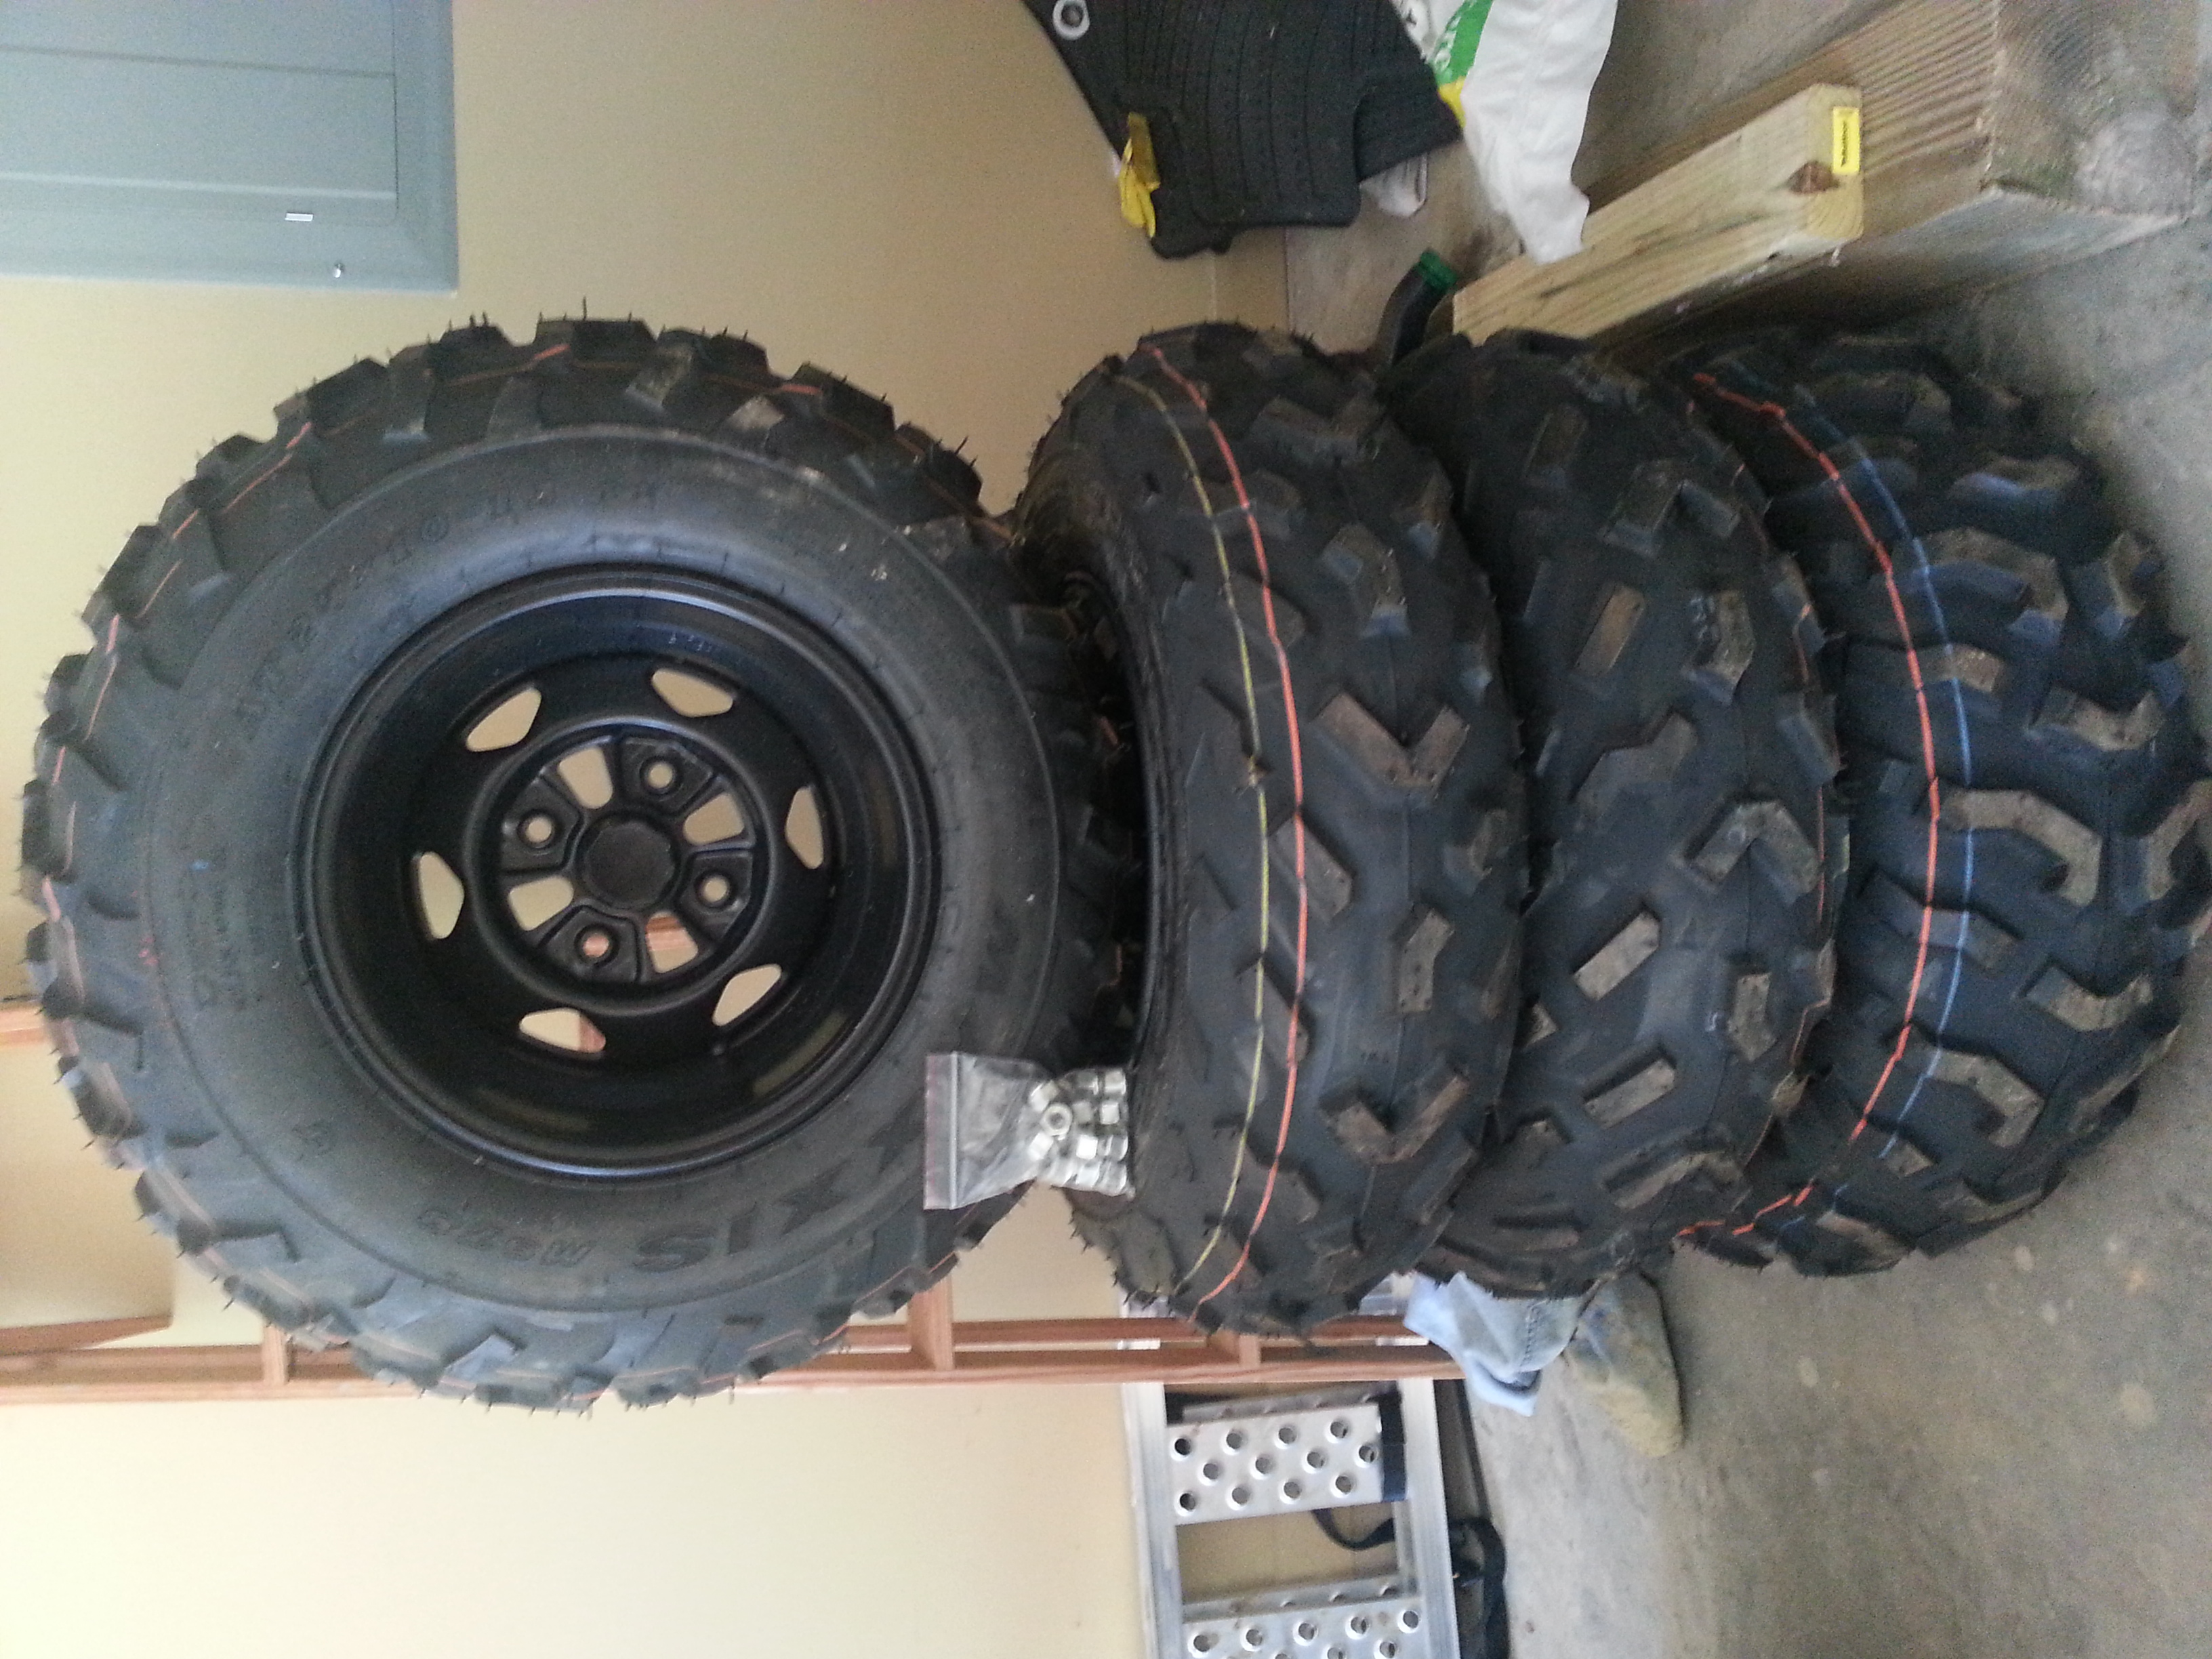 OEM Wheels And Tires 20140513_154934